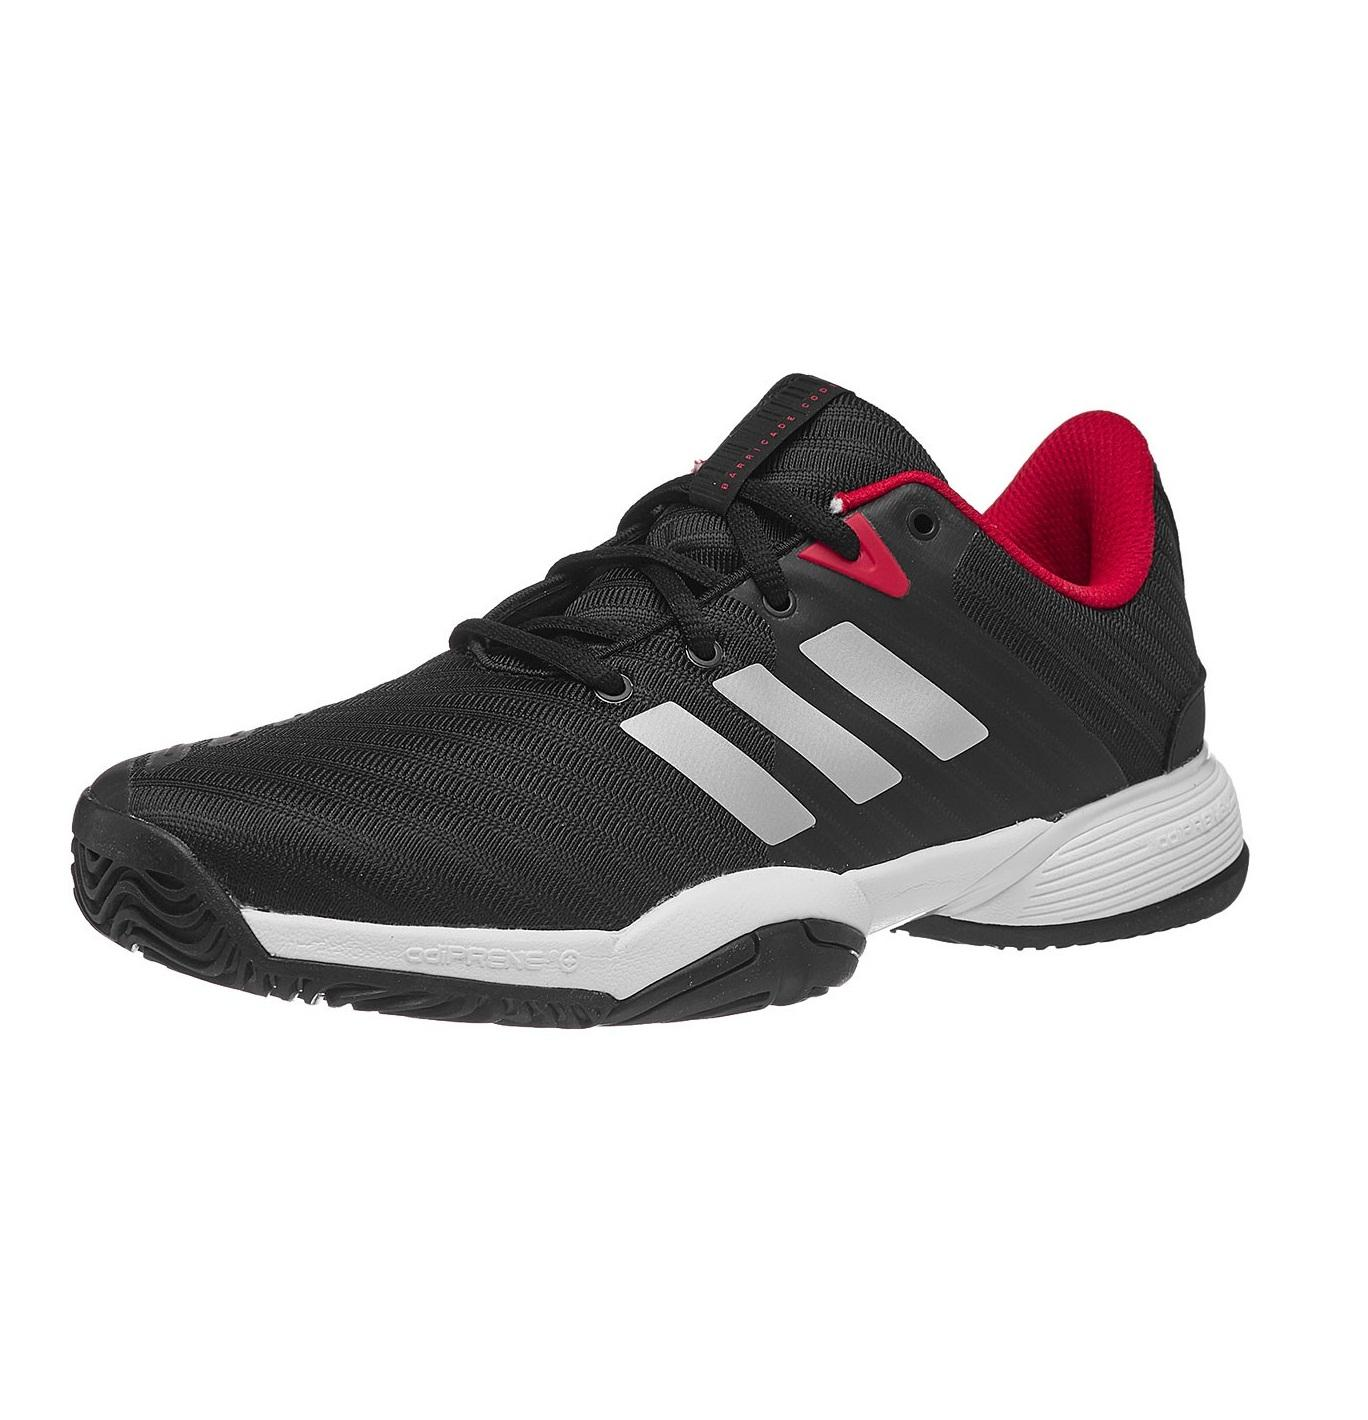 Giầy Tennis Adidas Barricade Cout 2018 XJ